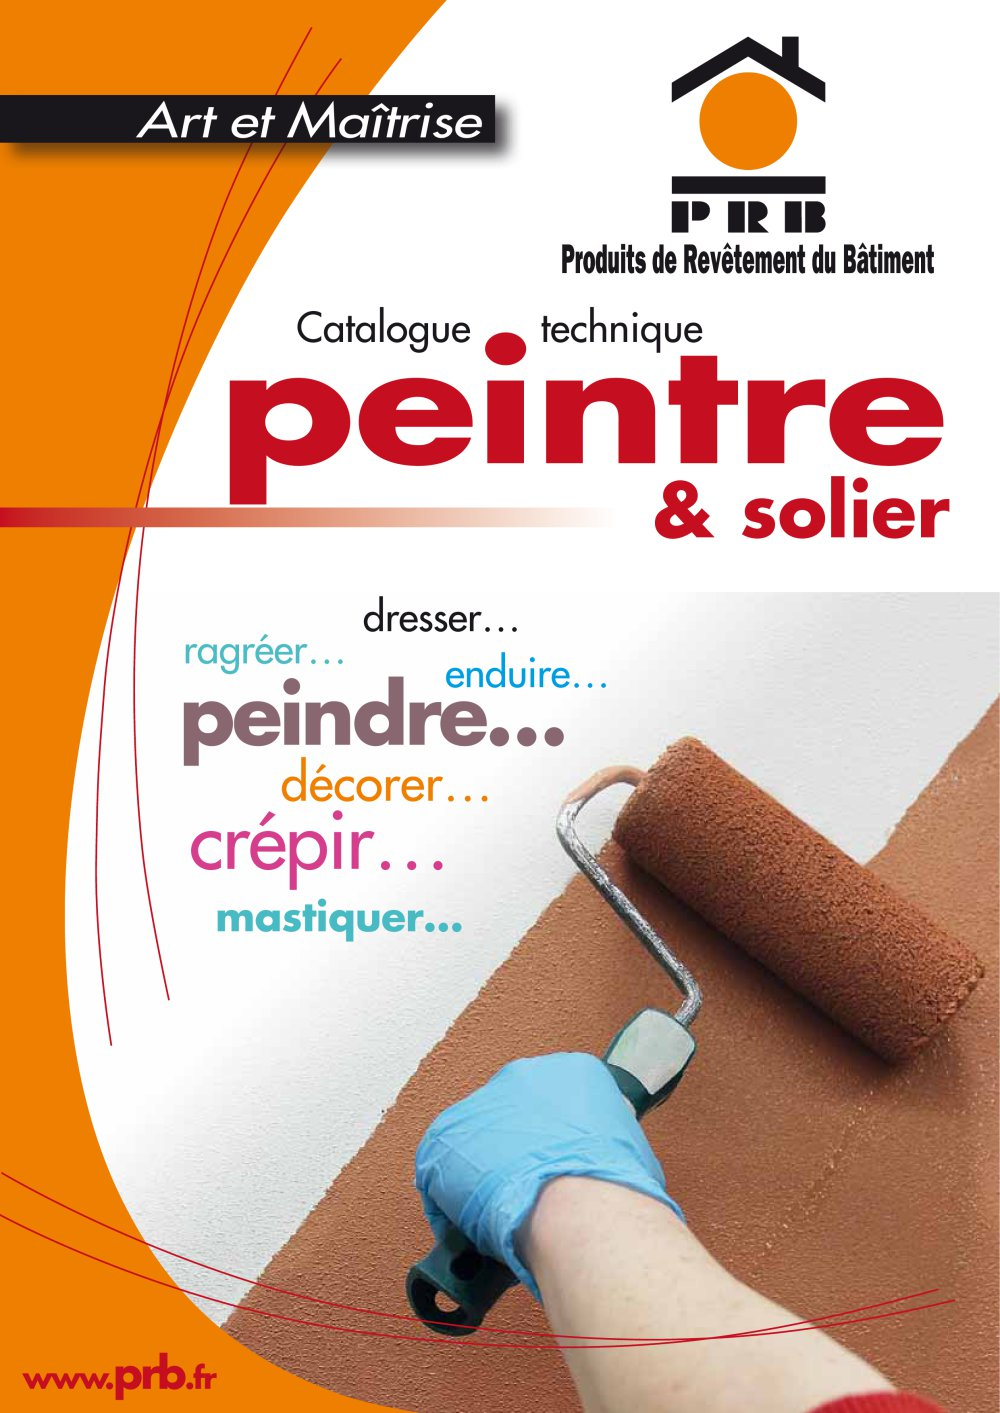 Catalogue Peinture peintre et solier - prb - catalogue pdf | documentation | brochure